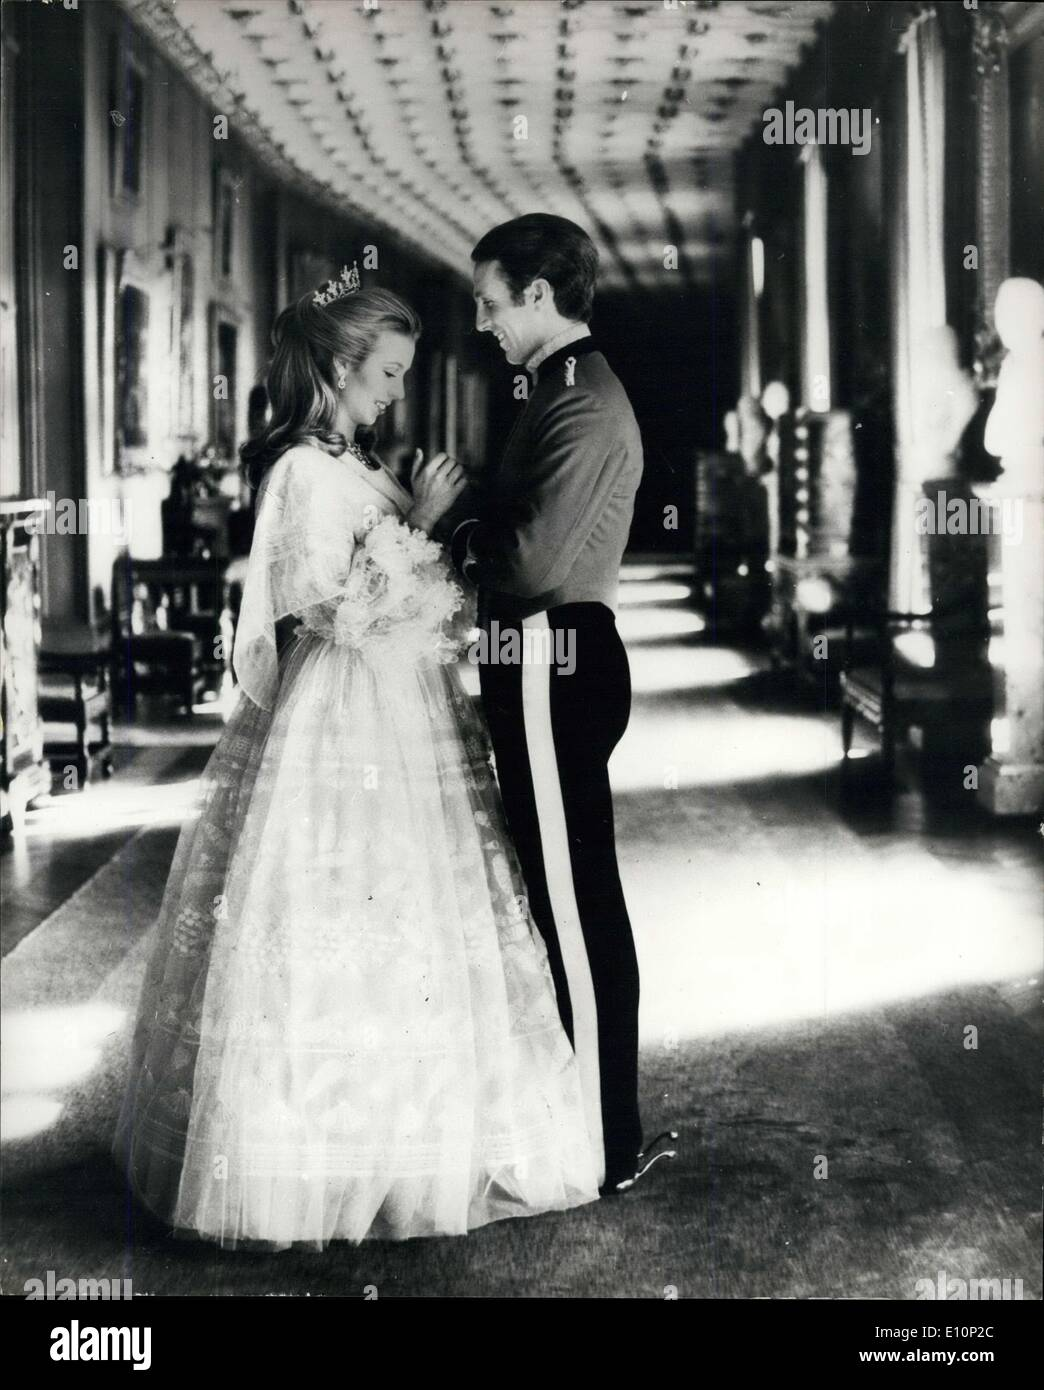 Nov. 06, 1973 - HRH Princess Anne And Captain Mark Philips: The marriage of HRH Princess Anne and Captain Philips of the Queen's Dragoon Guards will take place on November 14th, 1973 at Westminster Abbey. The Princess and Captain Philips are seen in the Long Gallery at Windsor Castle. With her full length white dress (by Zandra Rhodes) Princess Anne is wearing a diamond tiara, Diamond earrings and a diamond necklace, Captain Philips is wearing the Mess Kit of his regiment. - Stock Image